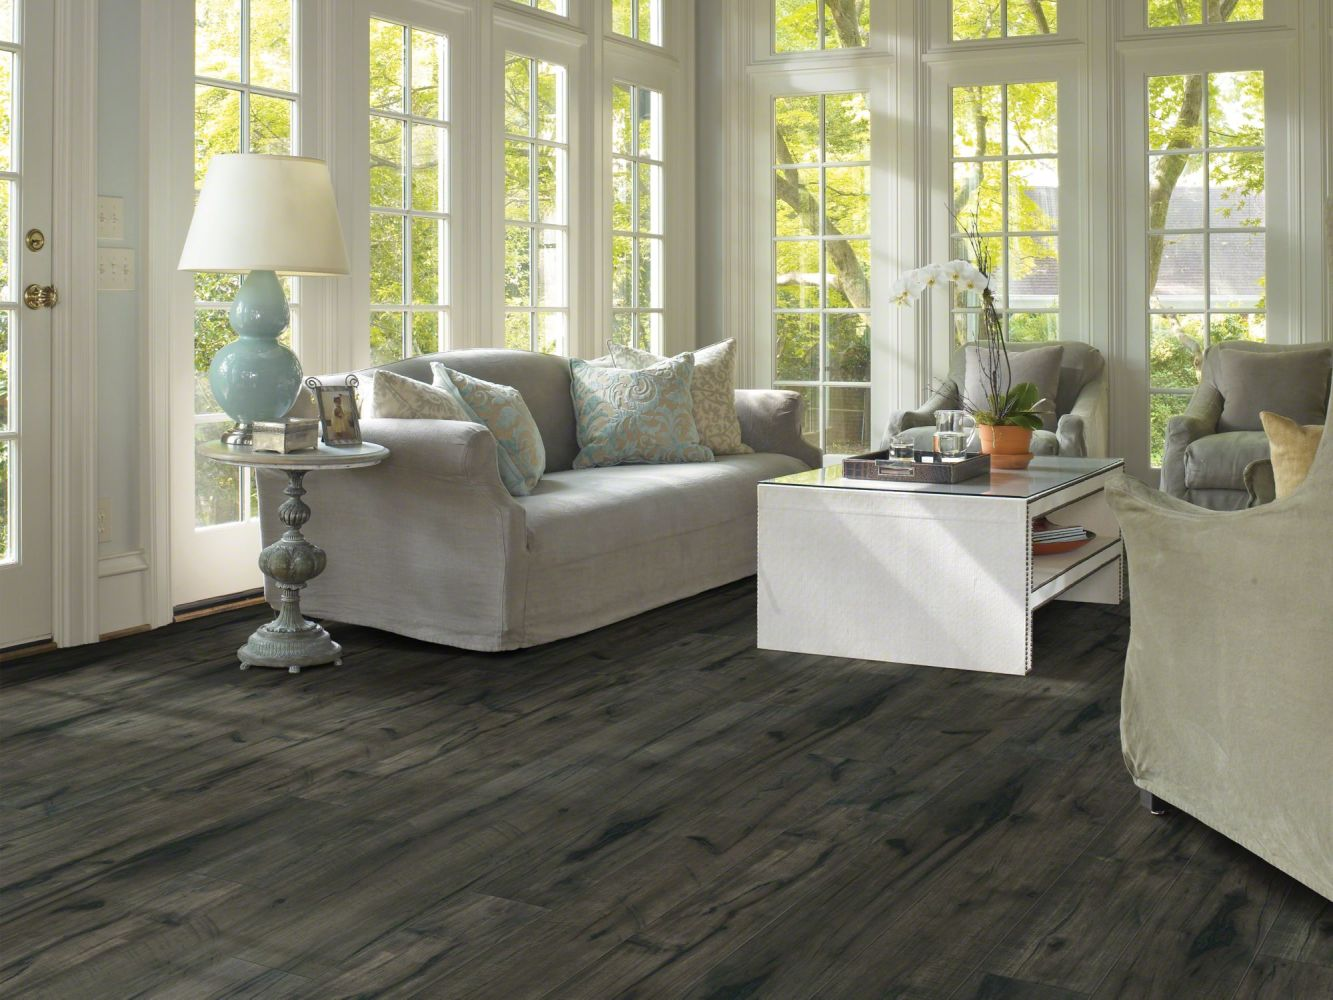 Shaw Floors Versalock Laminate Pinnacle Port Midnight Hckry 09001_SL378